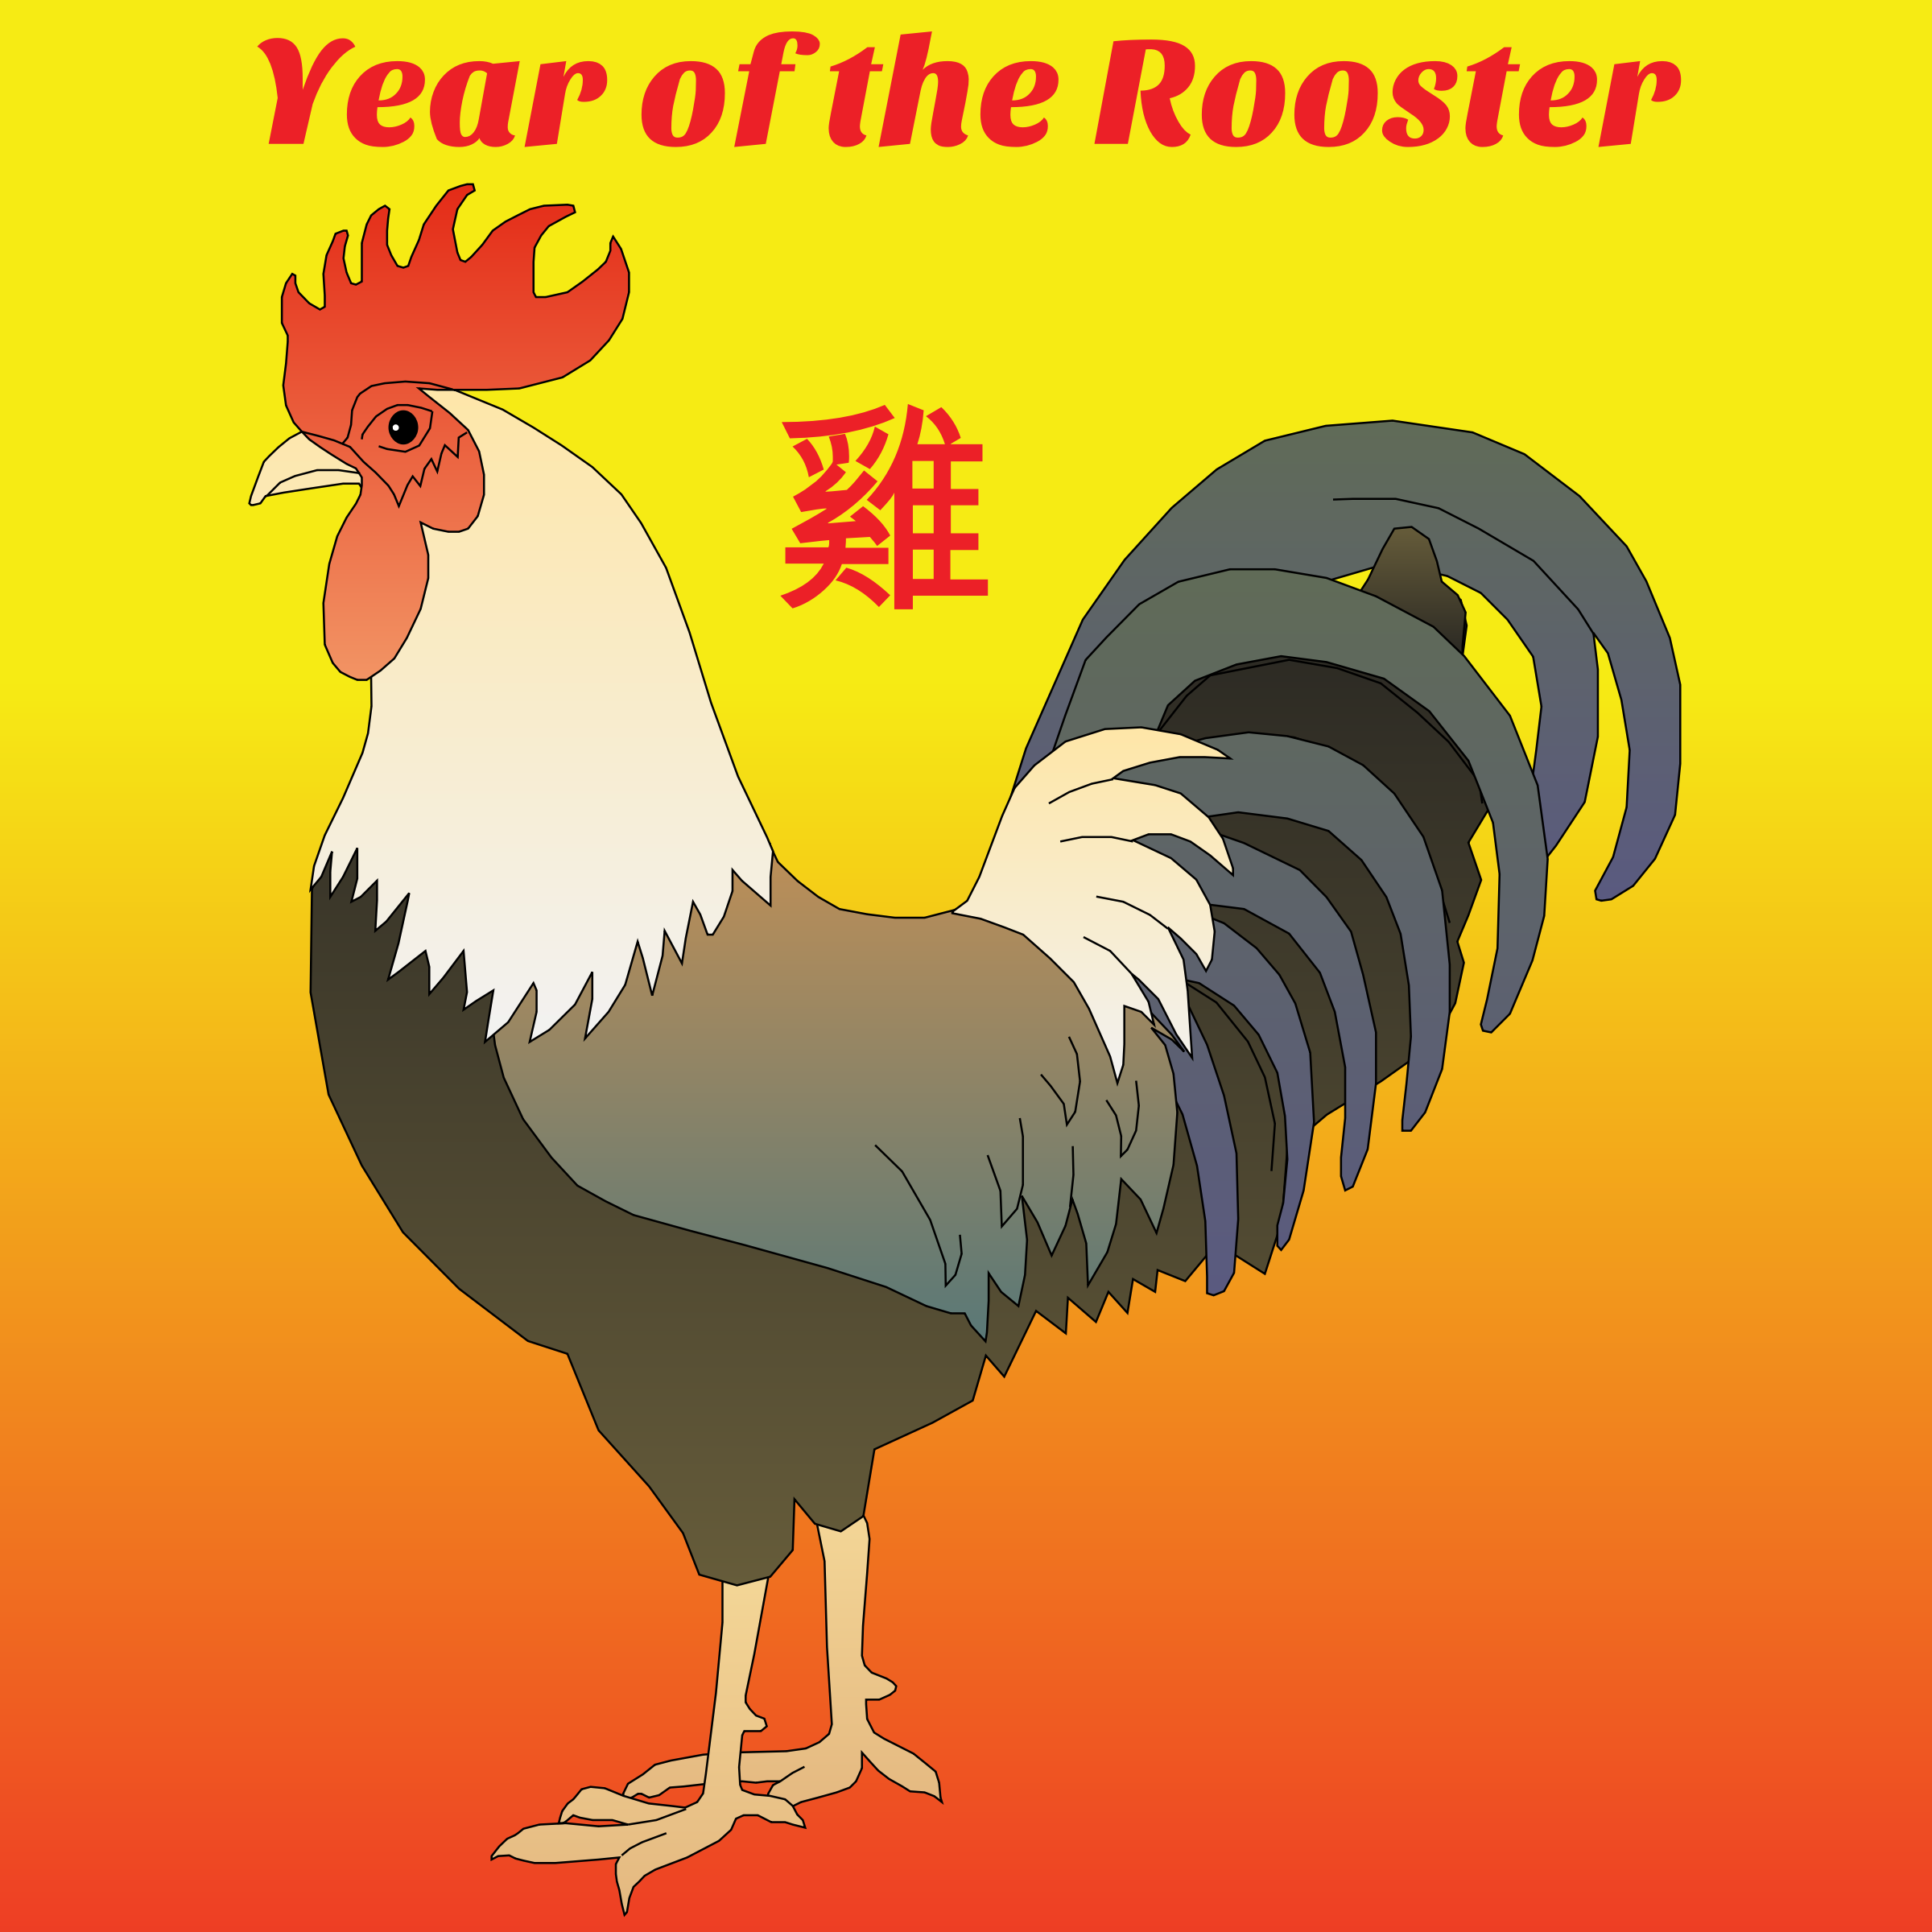 Year of the Rooster 2017 by JayNick